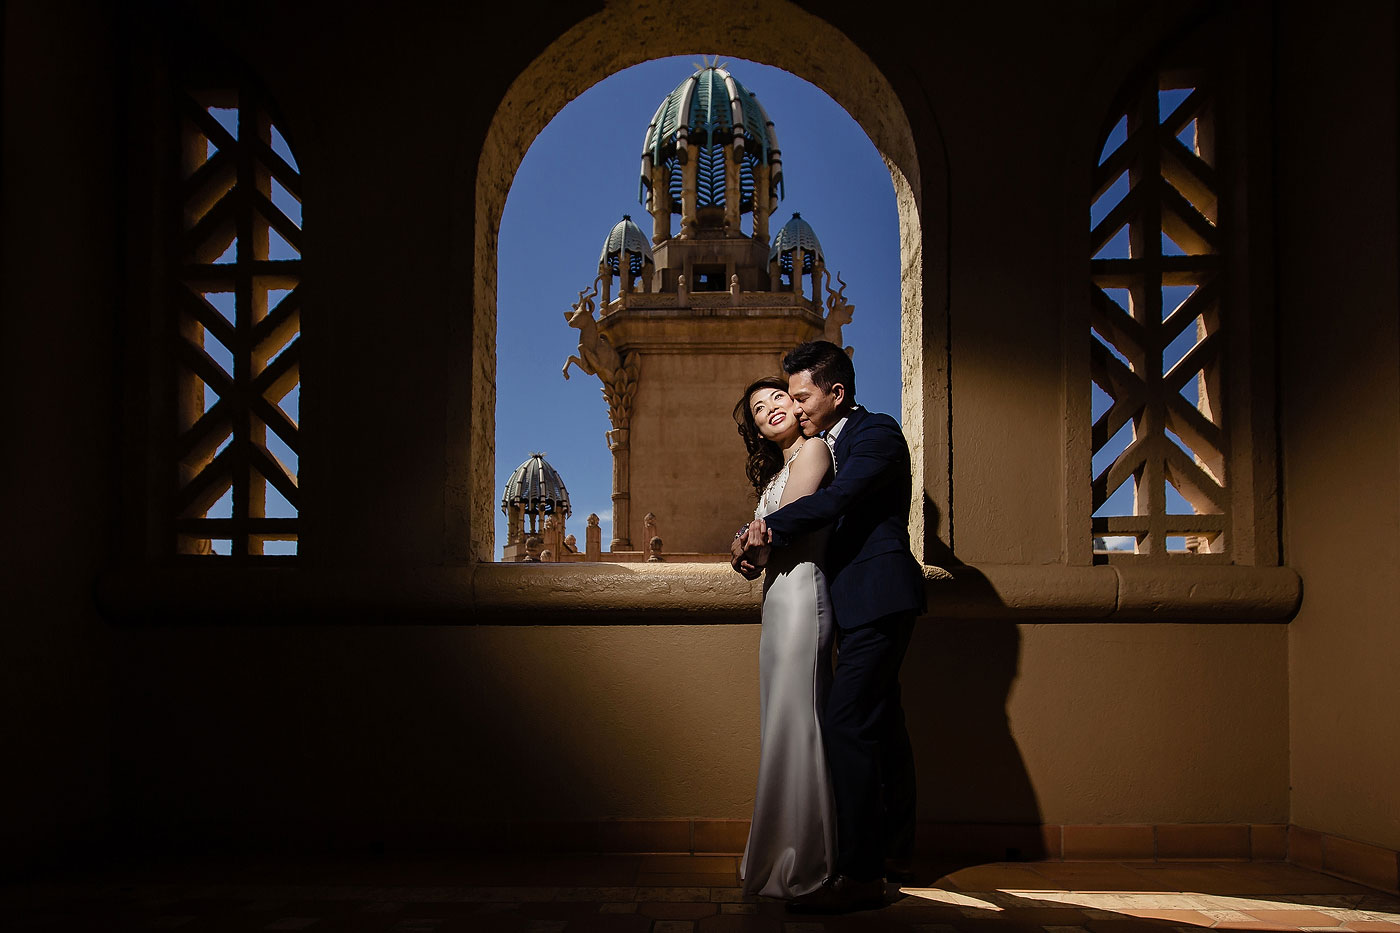 Sun City Wedding at the Palace of the Lost City